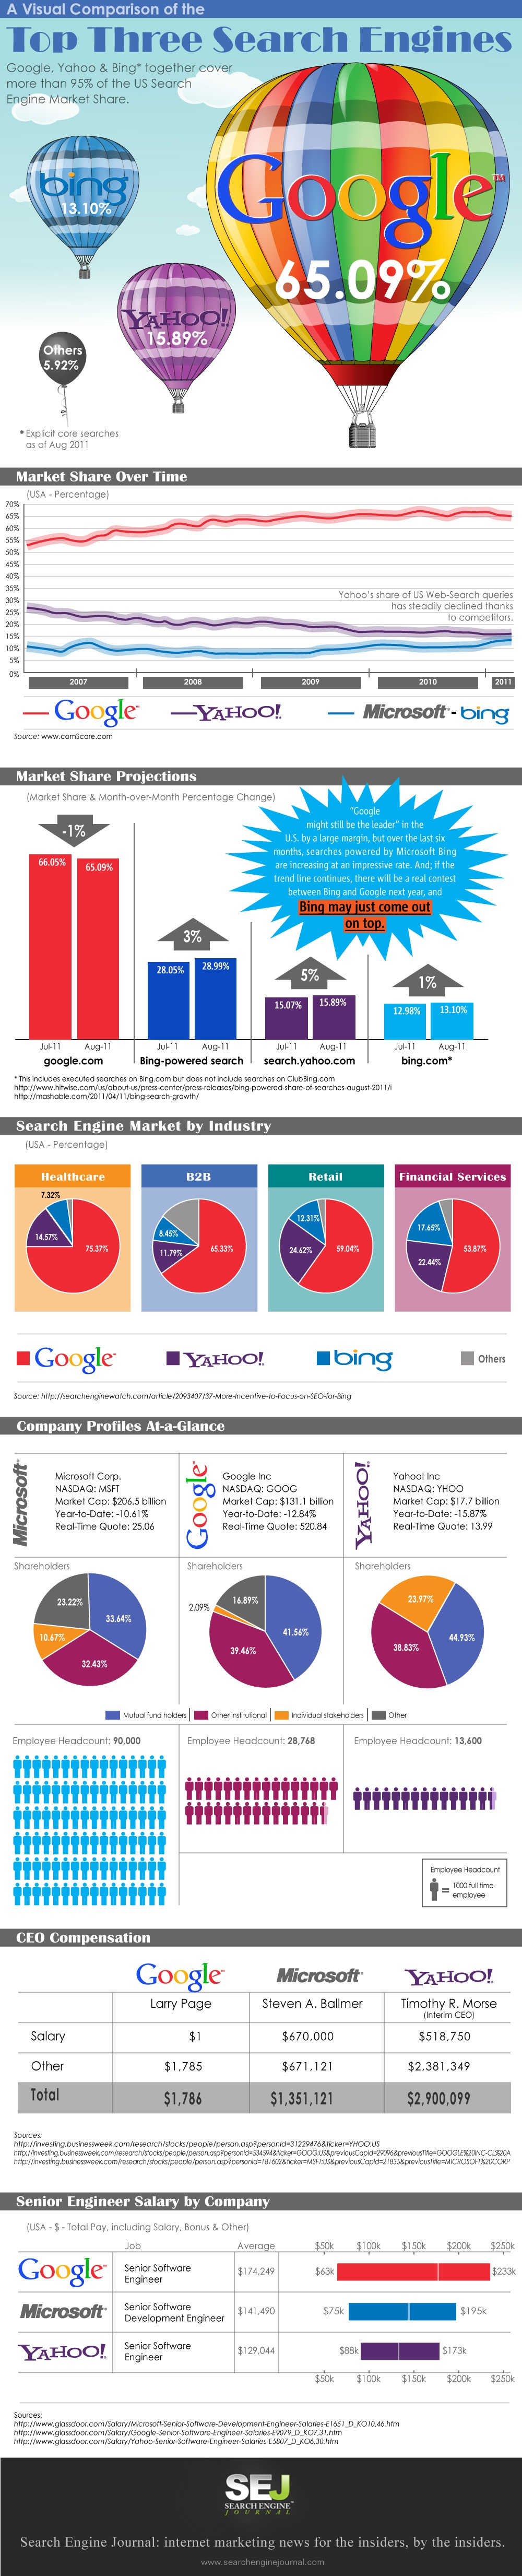 Comparison of the Top Three Search Engines: Bing+Yahoo > Google? [INFOGRAPHIC]